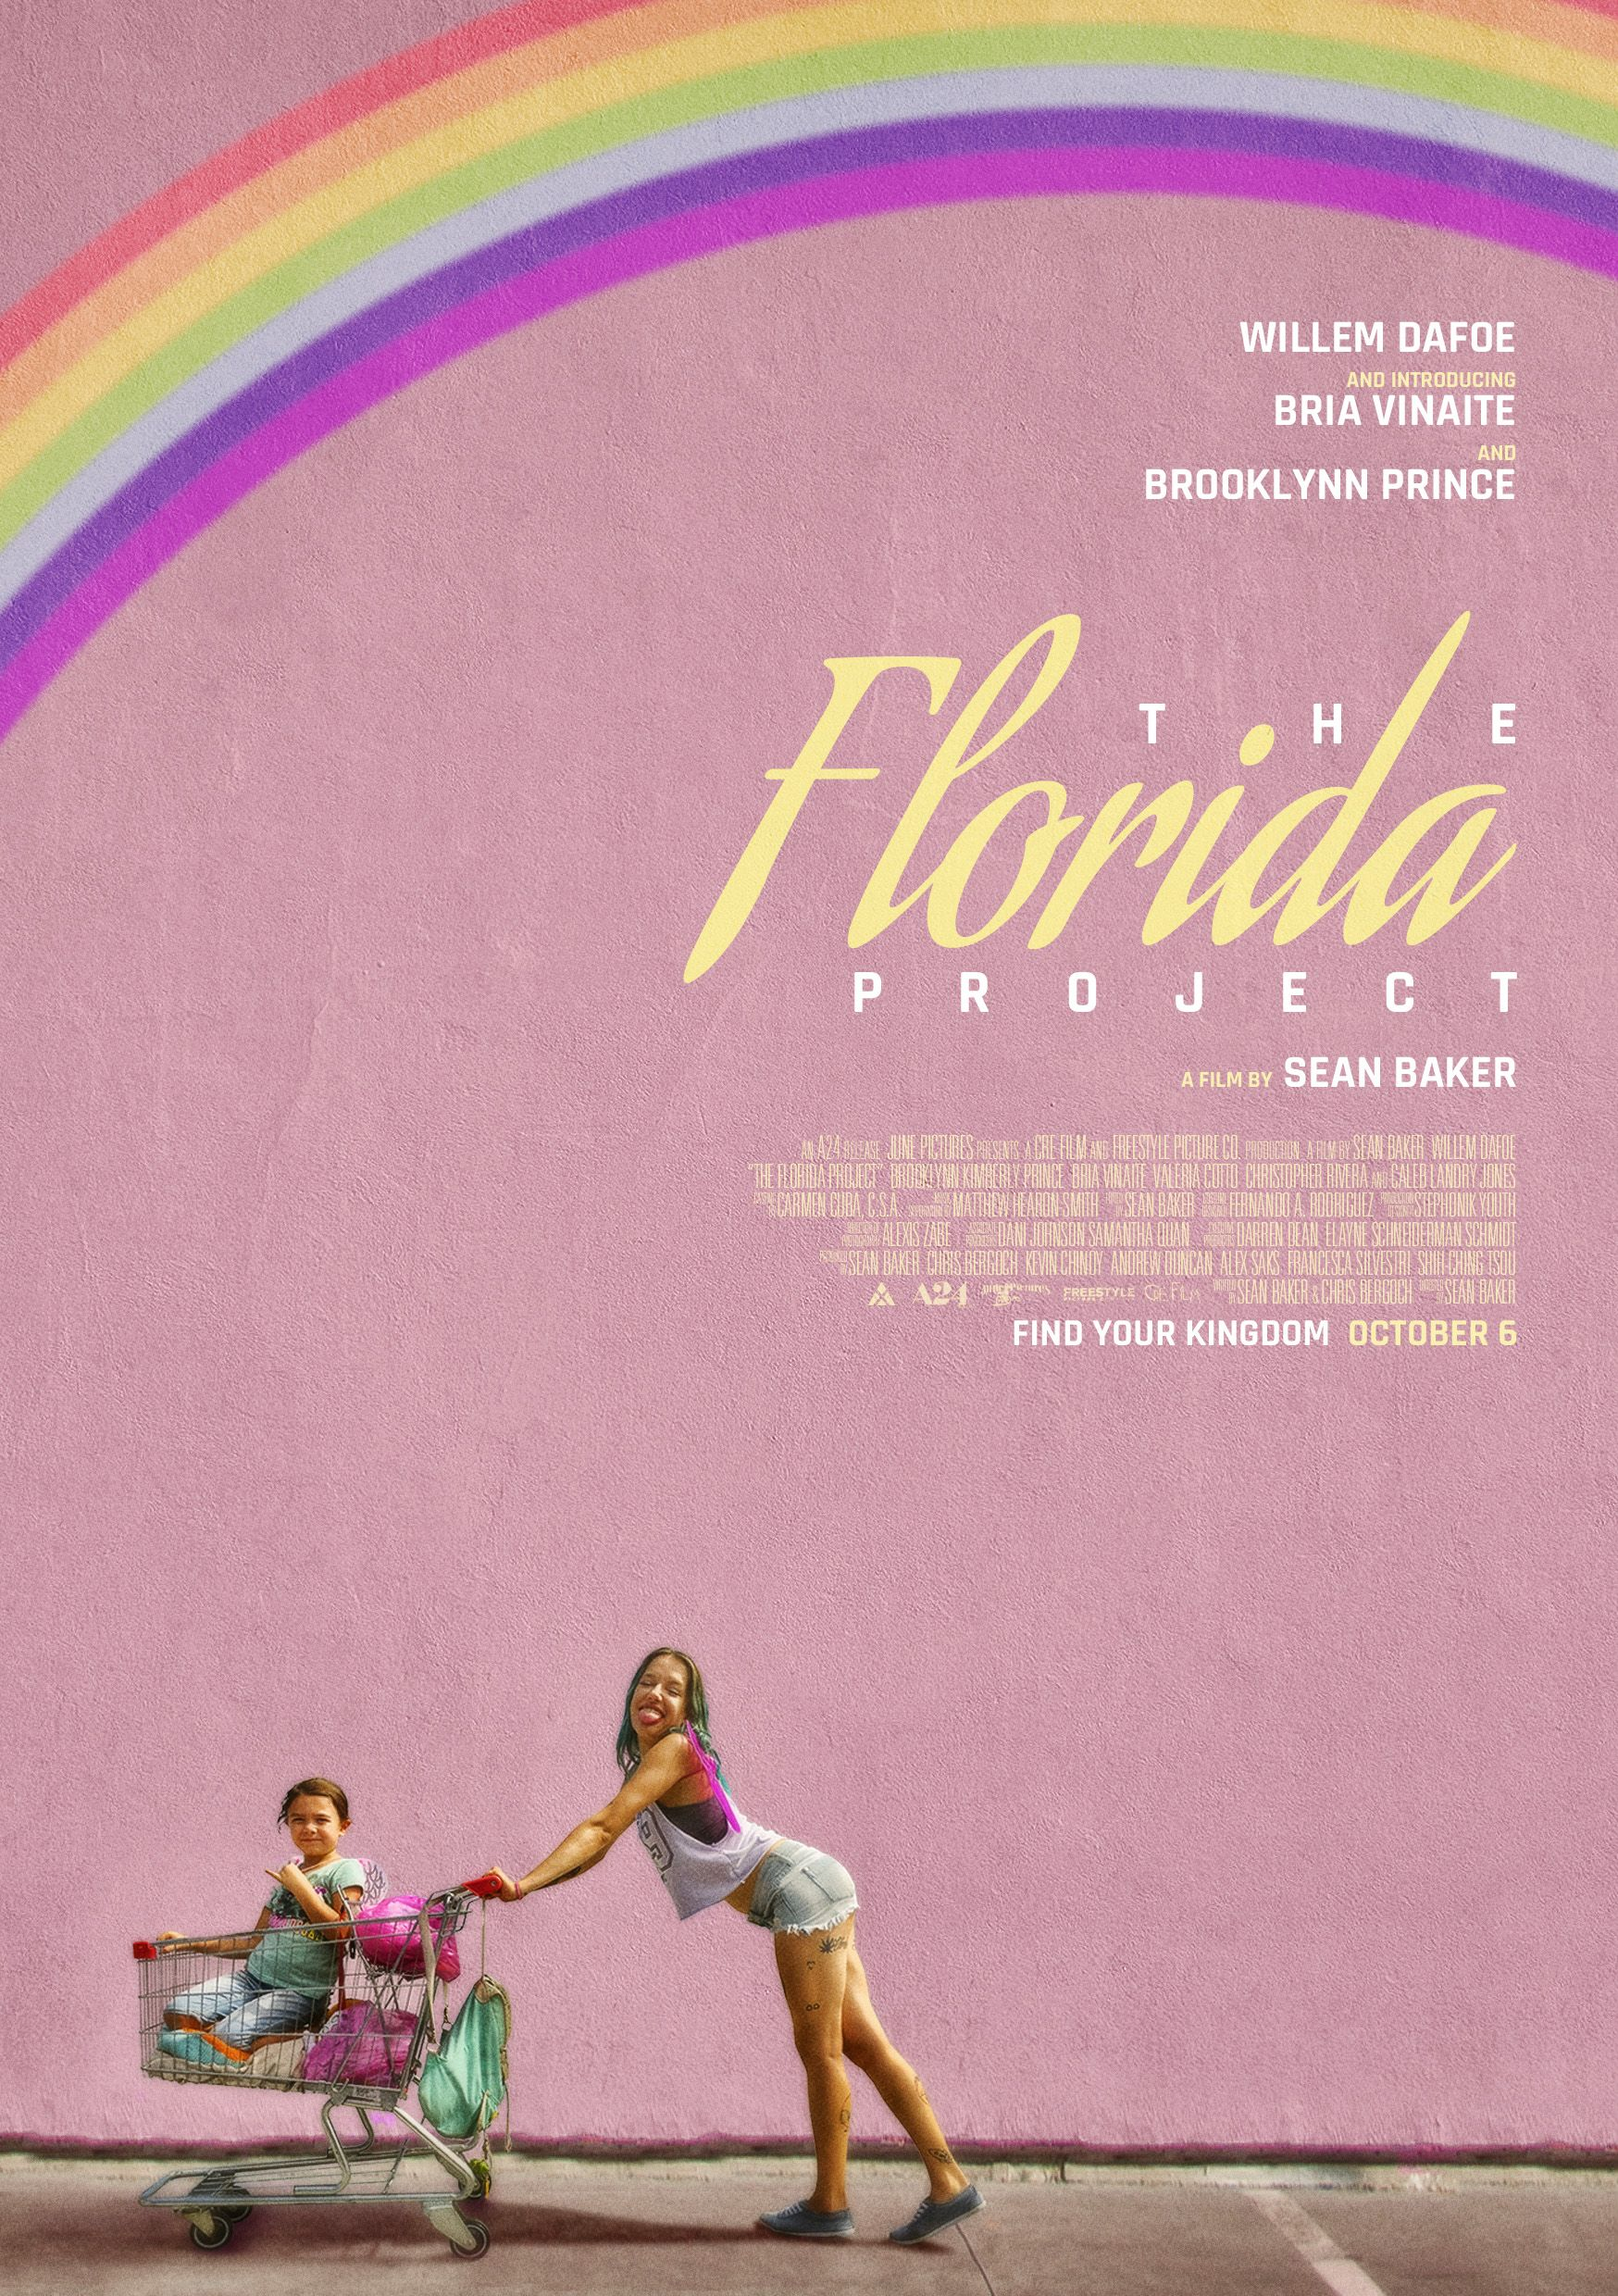 The Florida Project - Poster by Alecxps | Alternative movie posters ...